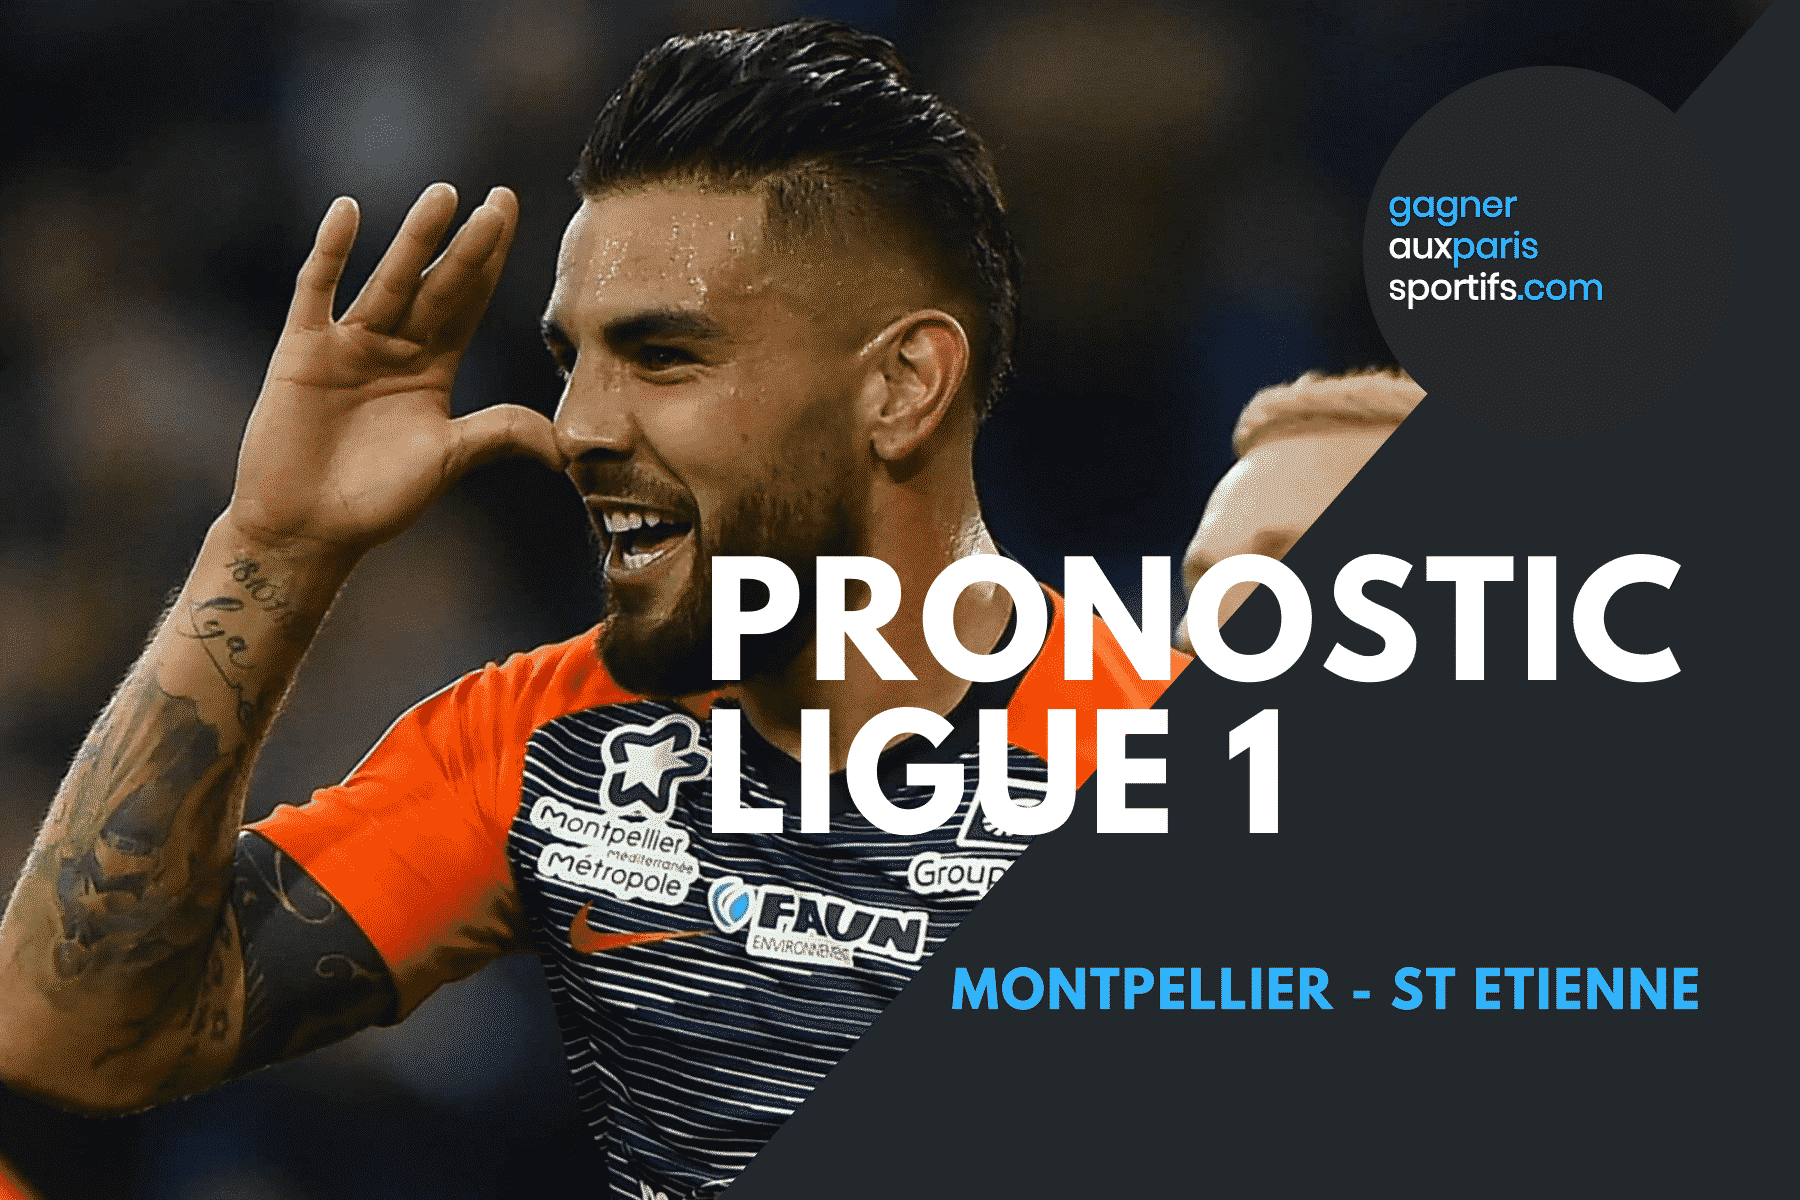 Pronostic Montpellier - St Etienne Ligue 1